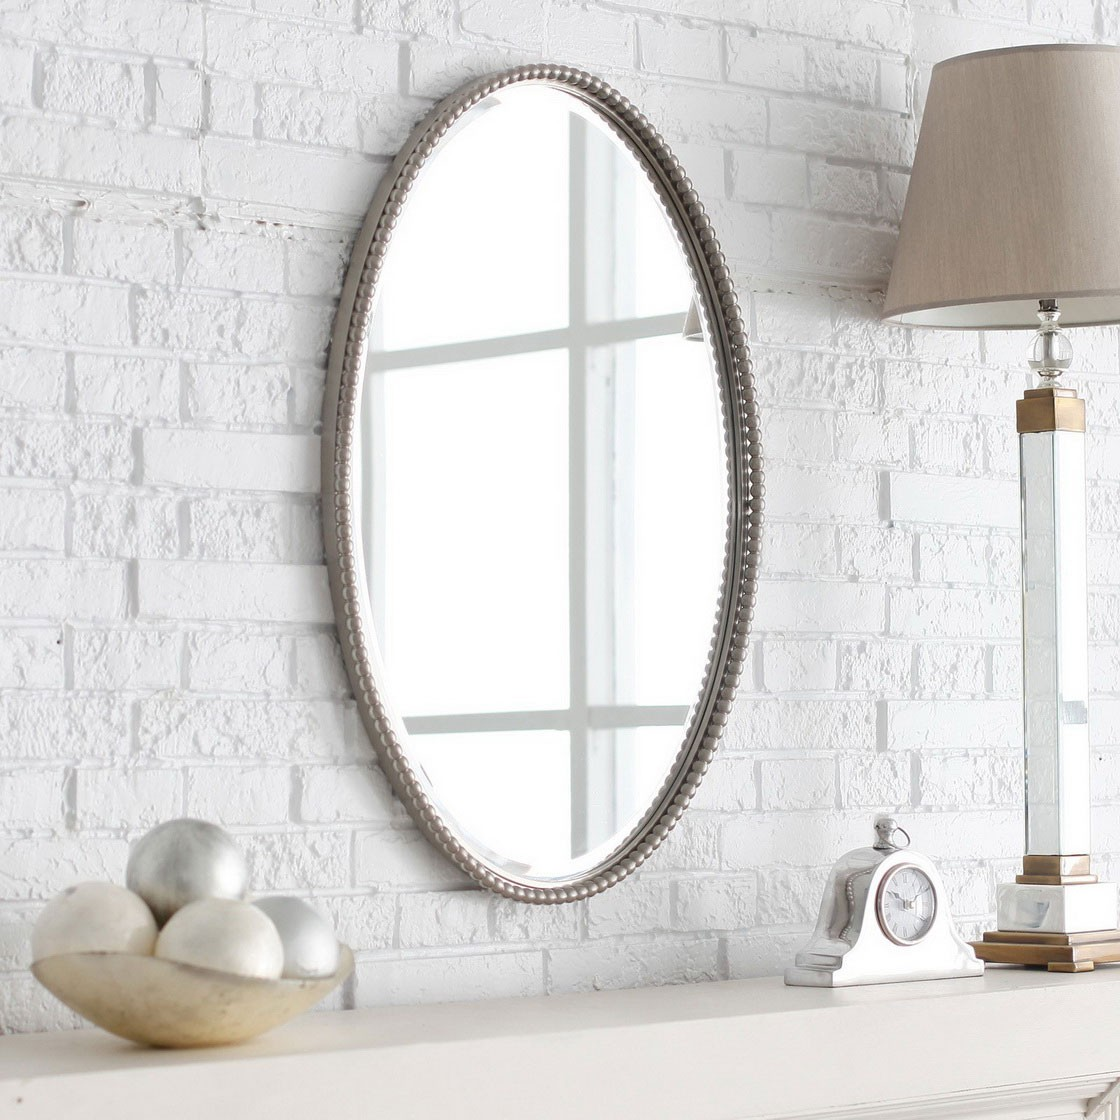 Image of: Small Bathroom Mirrors Oval